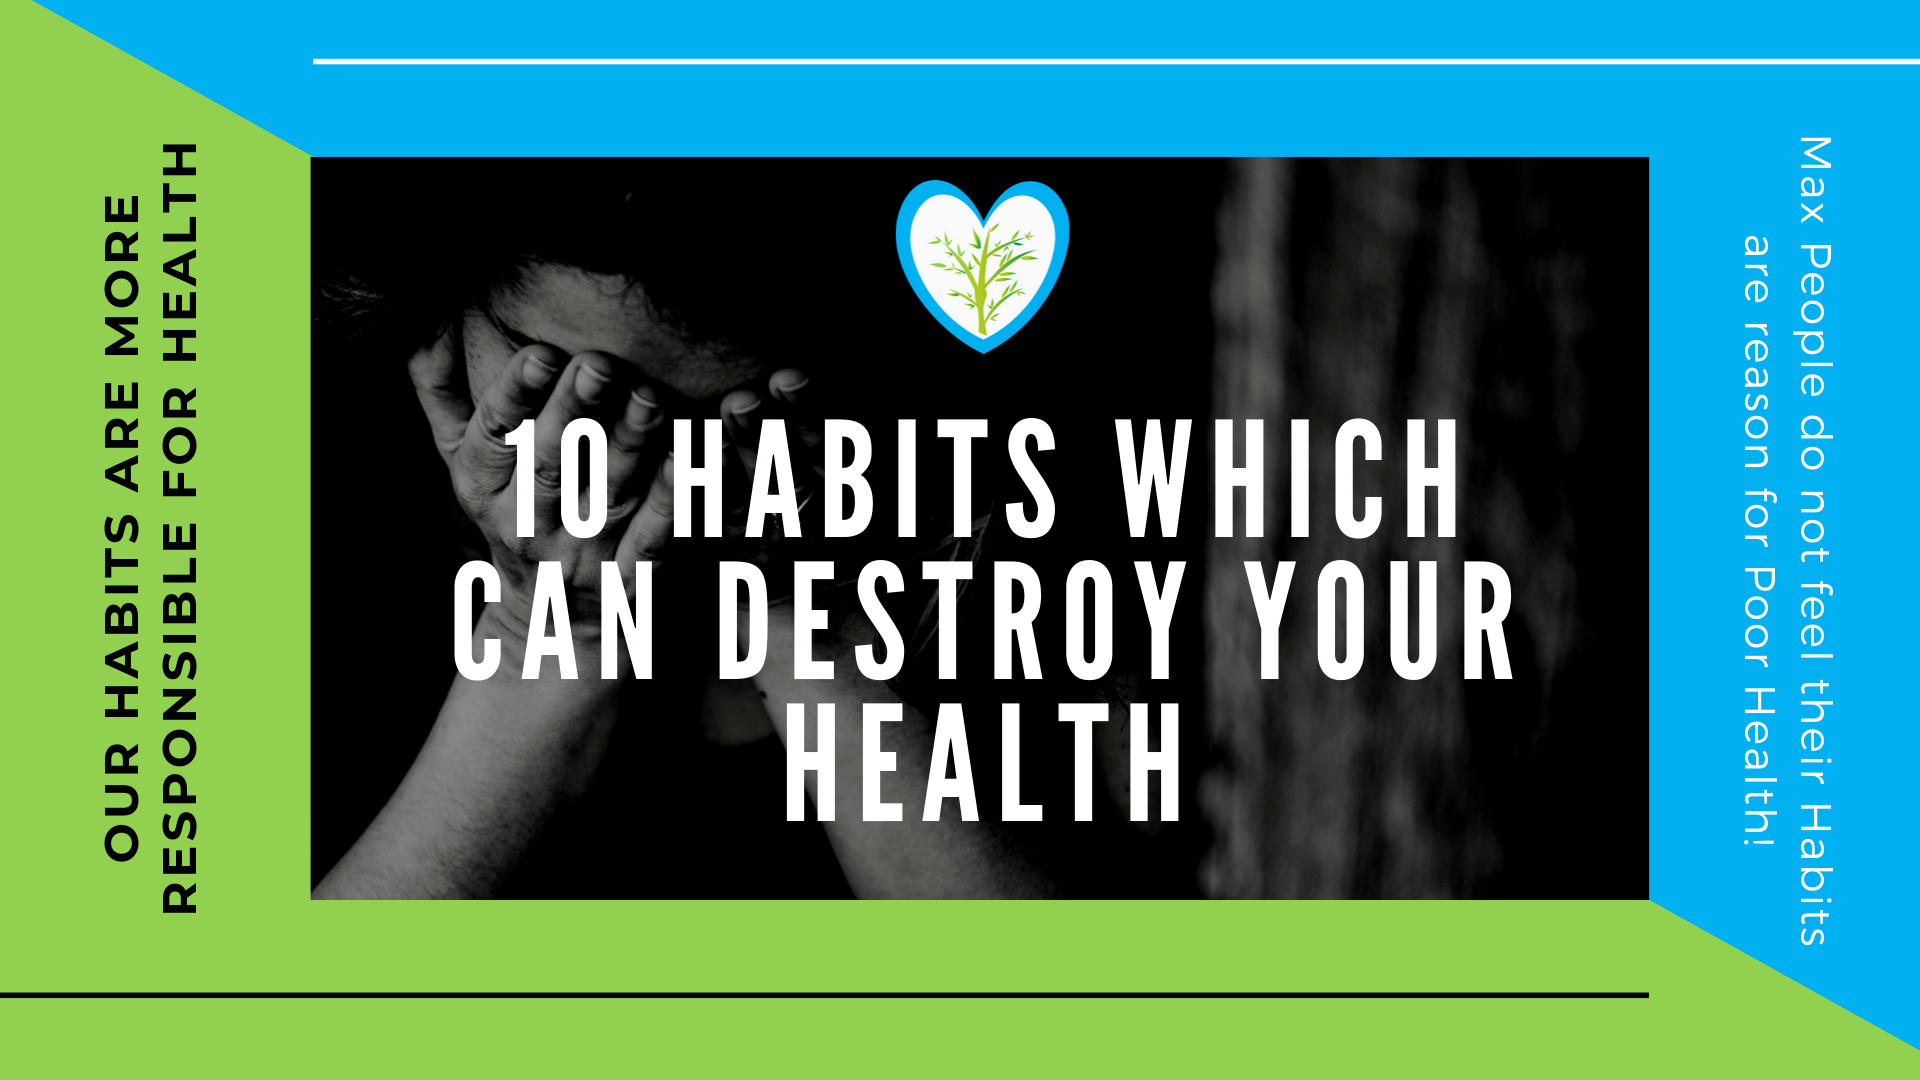 10 Habits which can destroy your Health